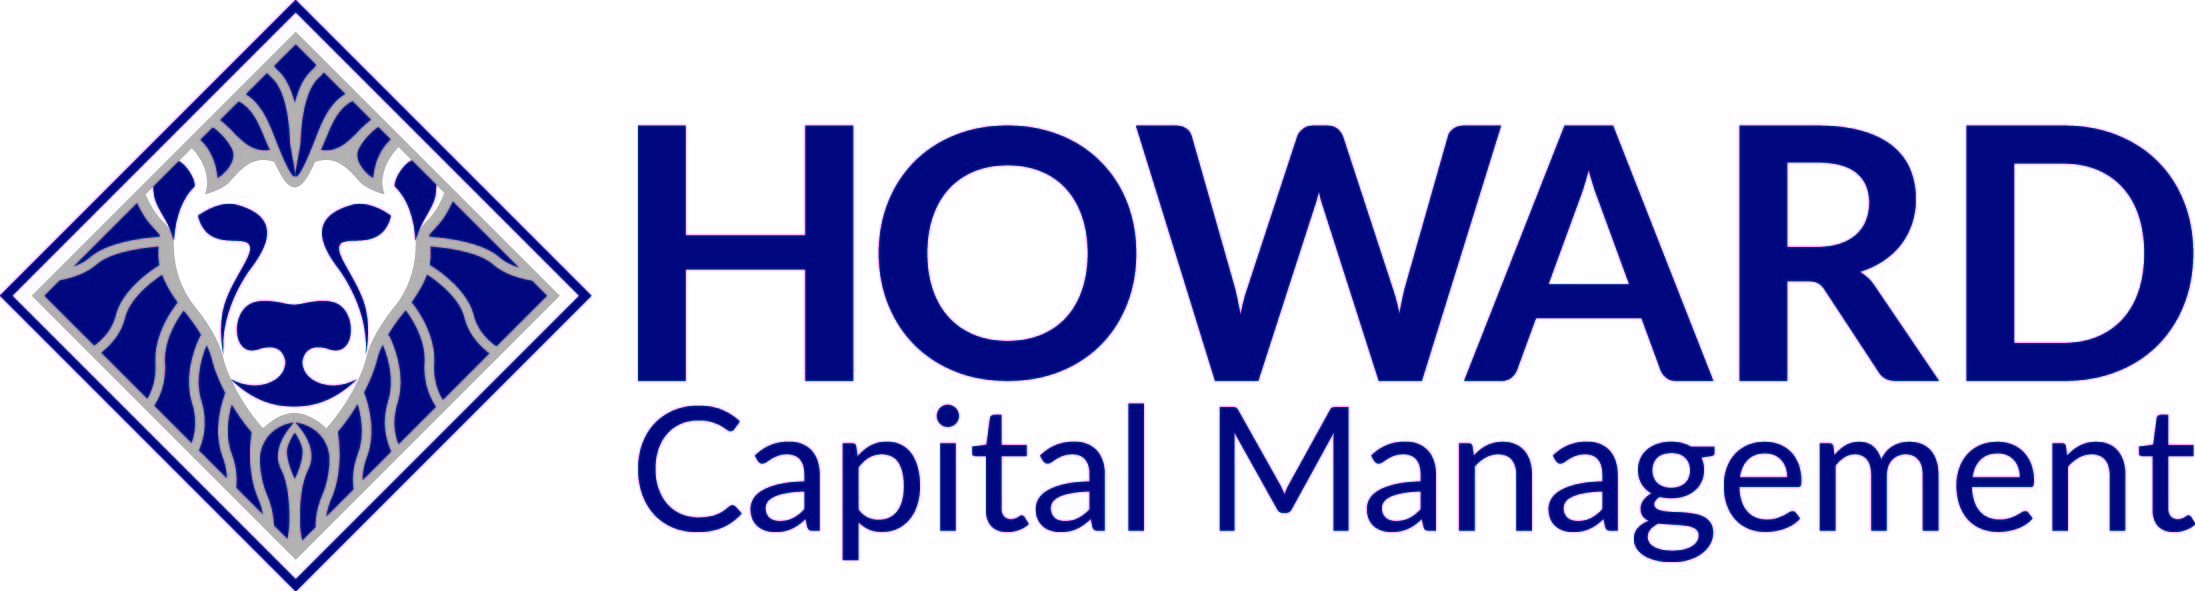 Howard Capital Management logo